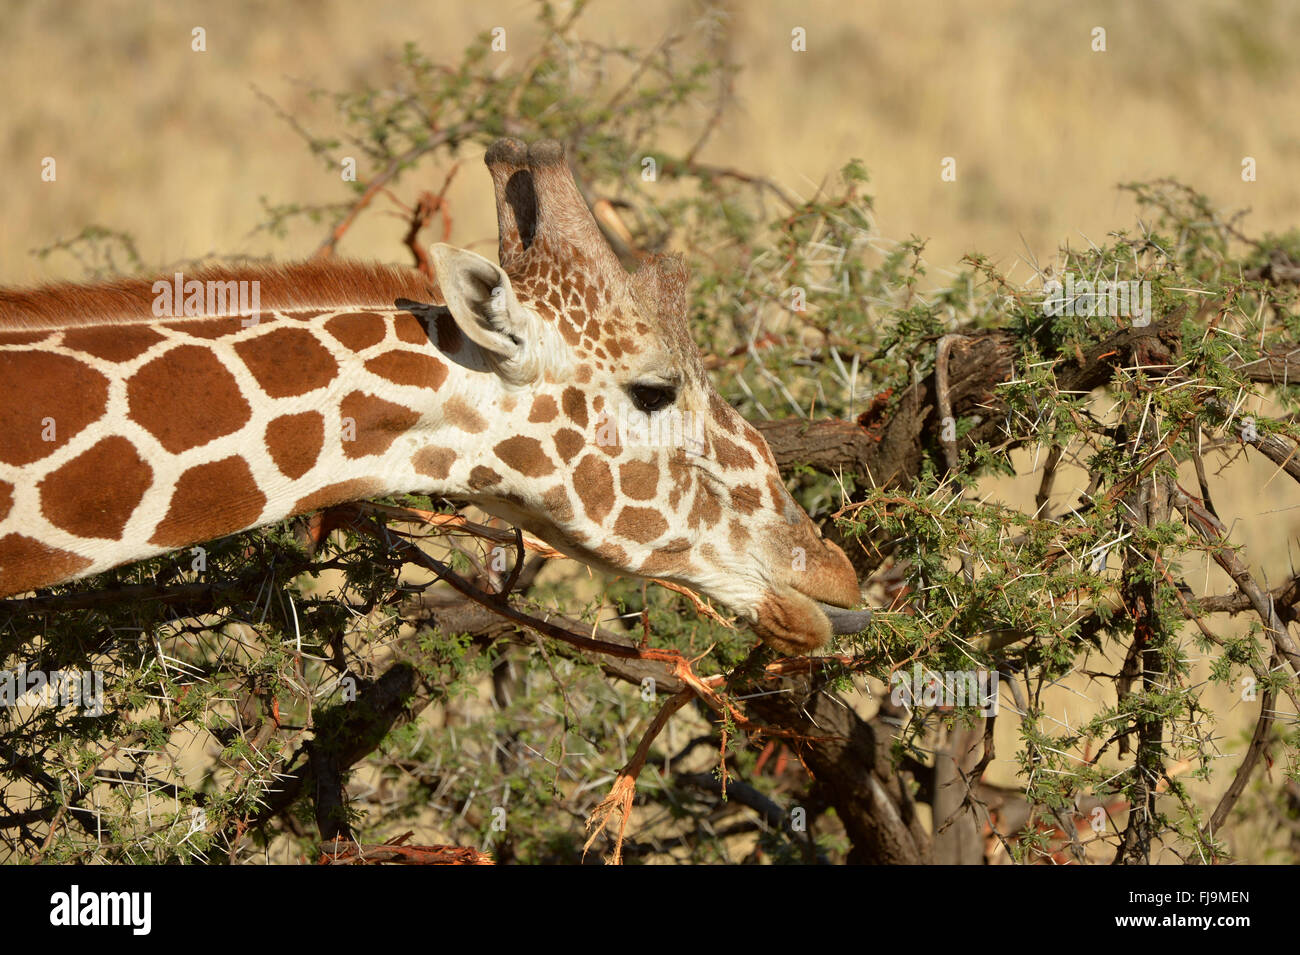 Reticulated Giraffe (Giraffa camelopardalis reticulata) close-up of head, feeding on acacia leaves, tongue extended, - Stock Image